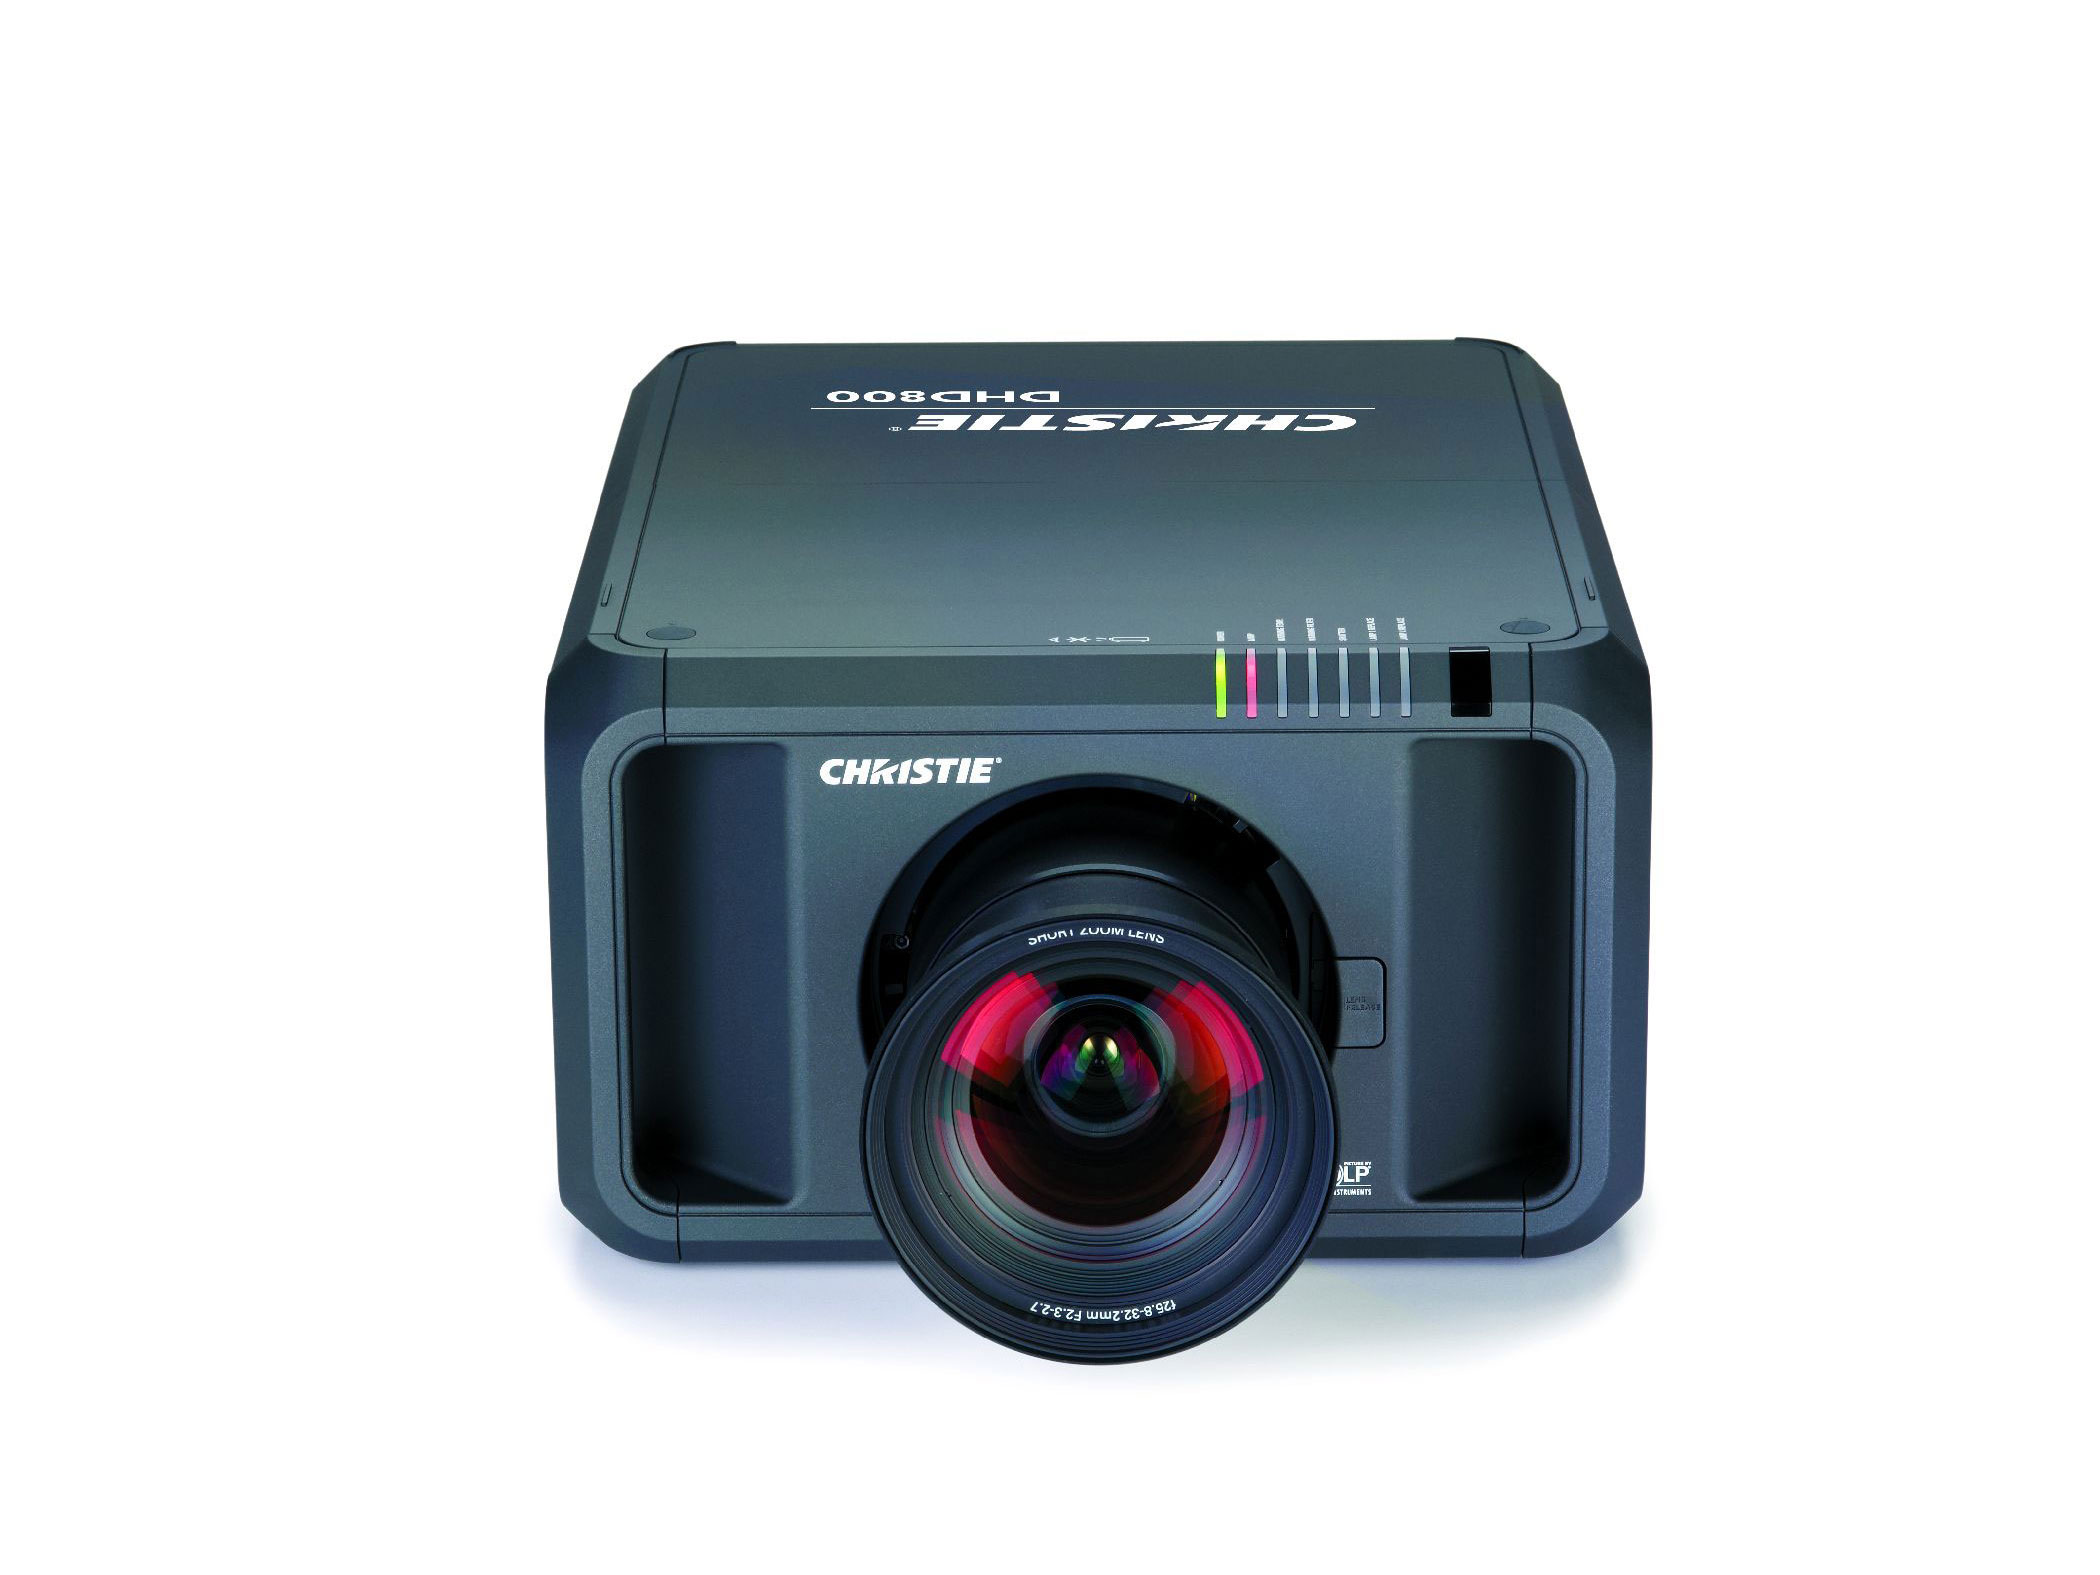 /globalassets/.catalog/products/images/christie-dhd800/gallery/christie-dhd800-digital-projector-image7.jpg